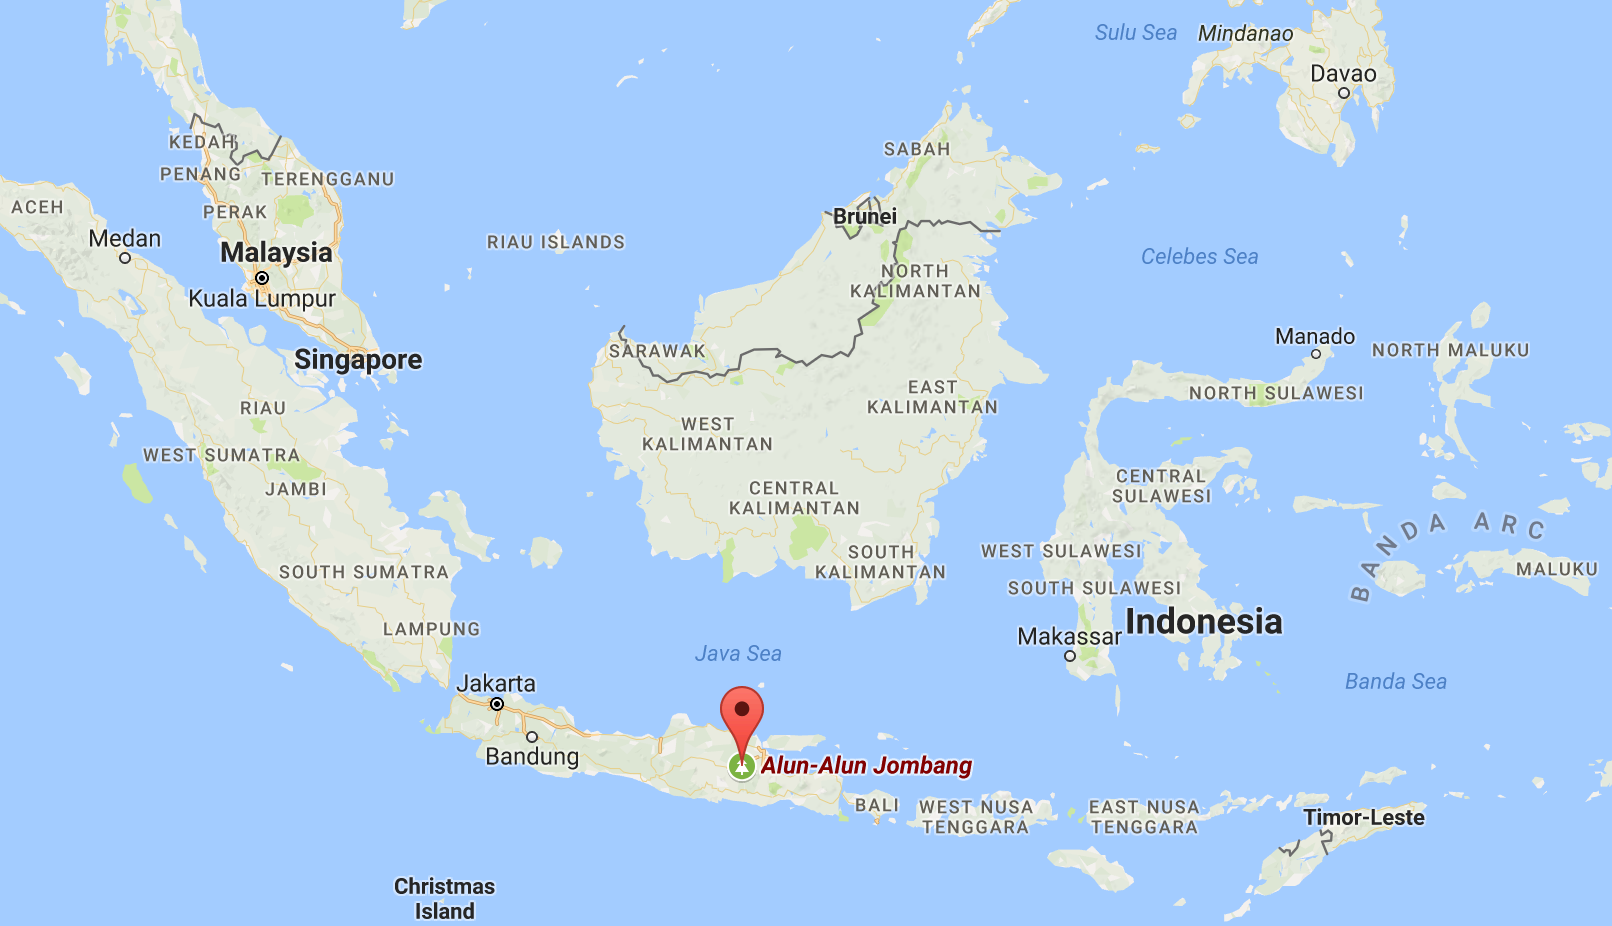 Pesantren Tebuireng school is located in the town of Jombang, about 500 miles east of Jakarta.